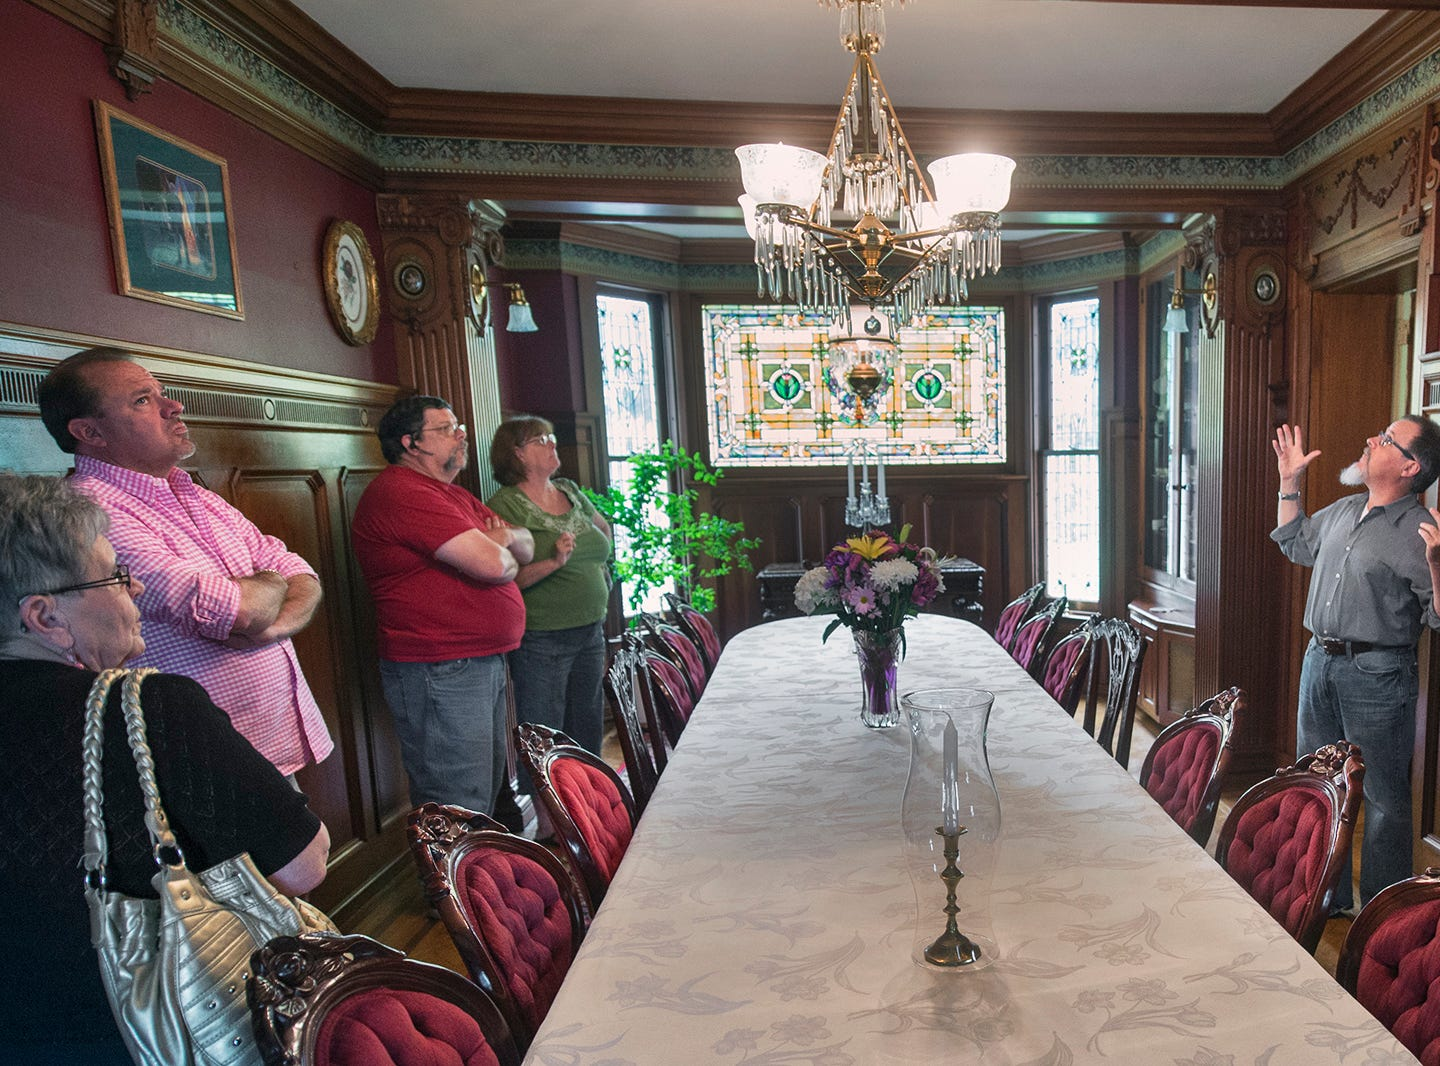 The Emig Mansion is for sale. The complete Bed & Breakfast business with website and reservations for the next year is $595,000. Just the house without furnishings is $475,000.  Terry Downs gives a tour of the dining room during an open house on May 17, 2015.